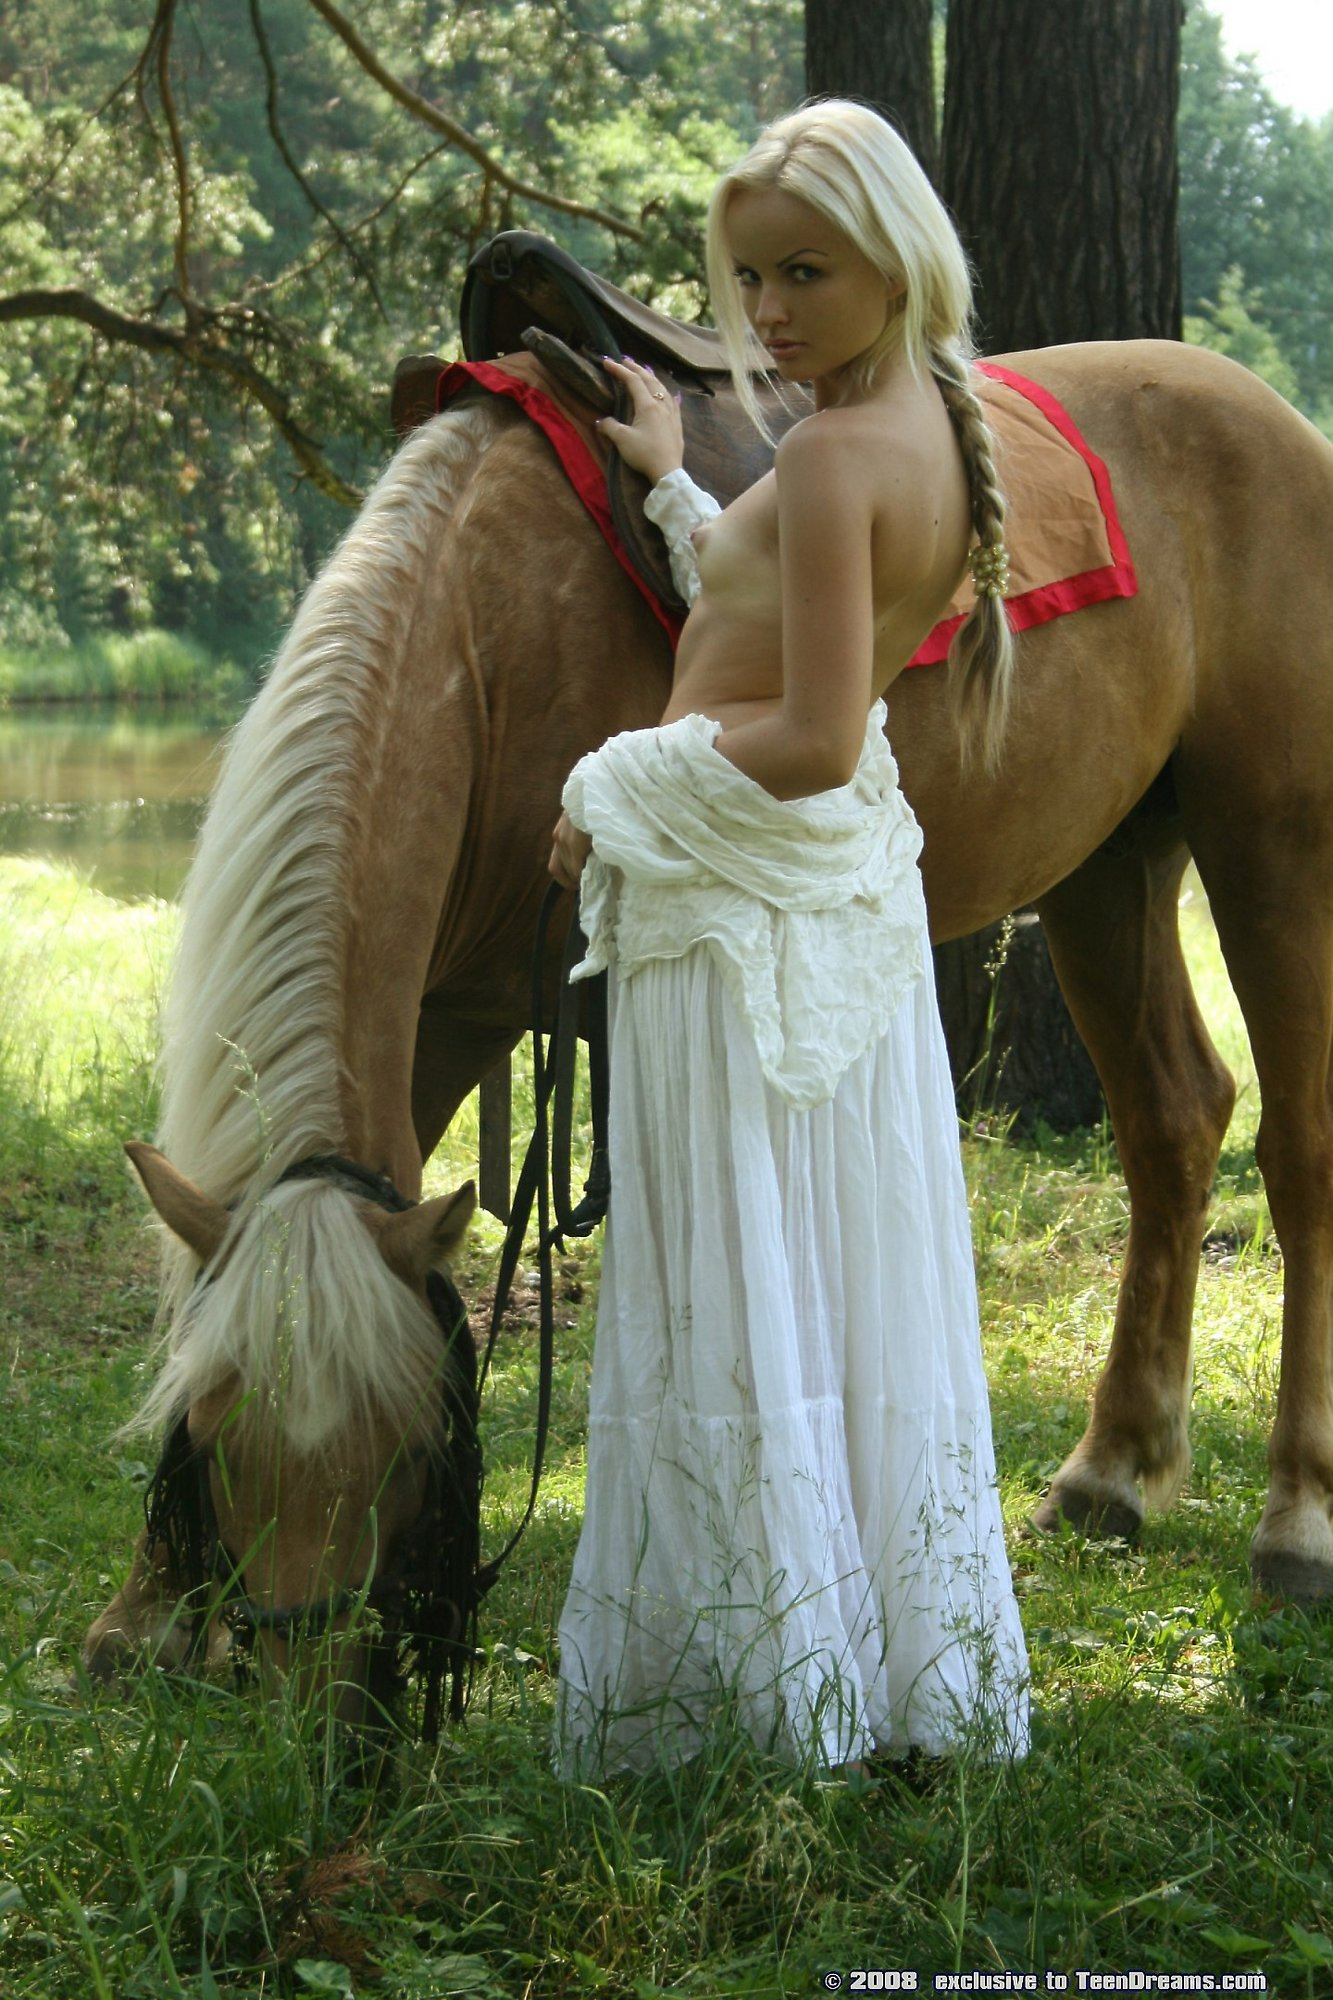 Pretty Blonde Riding Horse Naked In Woods - Mobile Porn Movies-2566